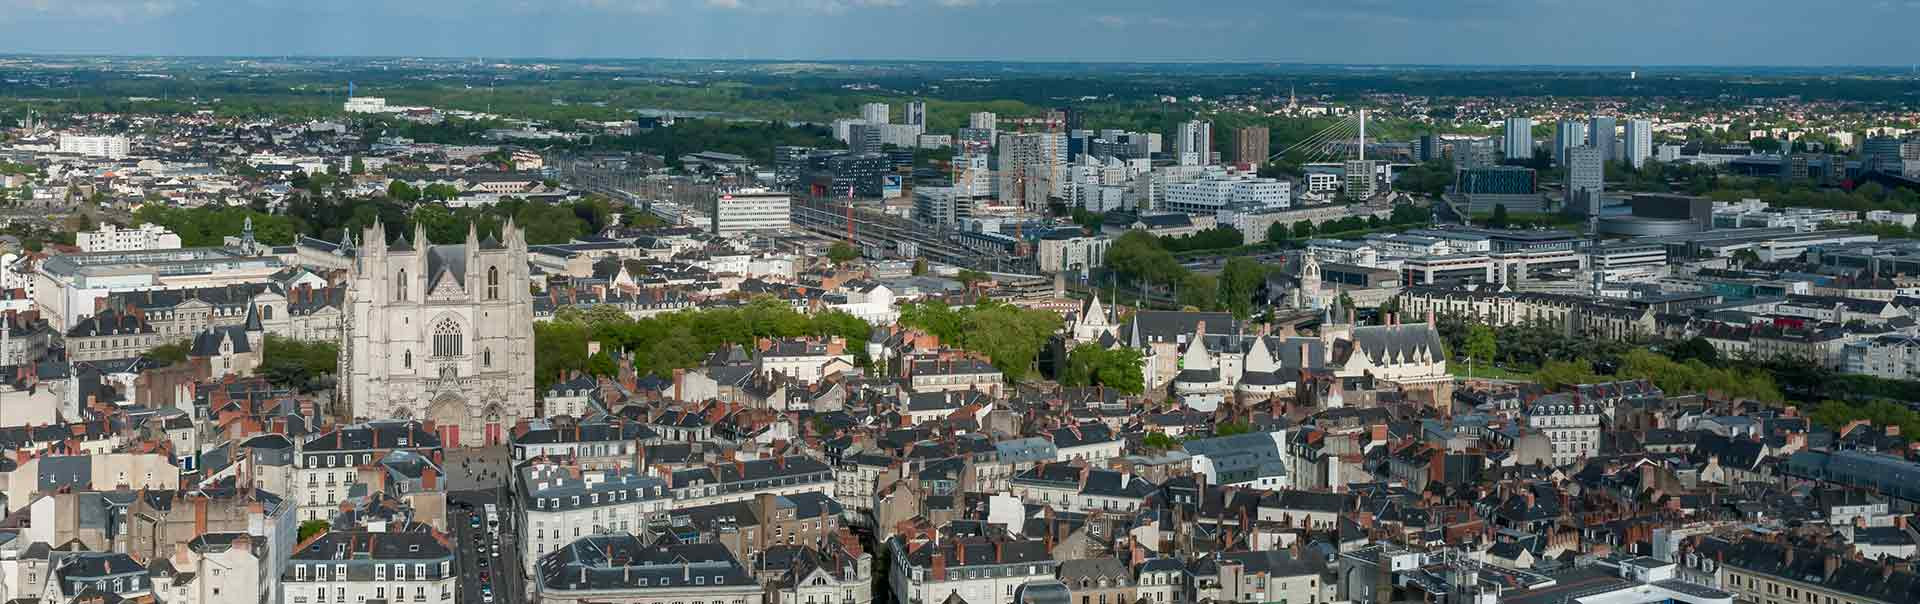 City of Nantes in Lorraine, France